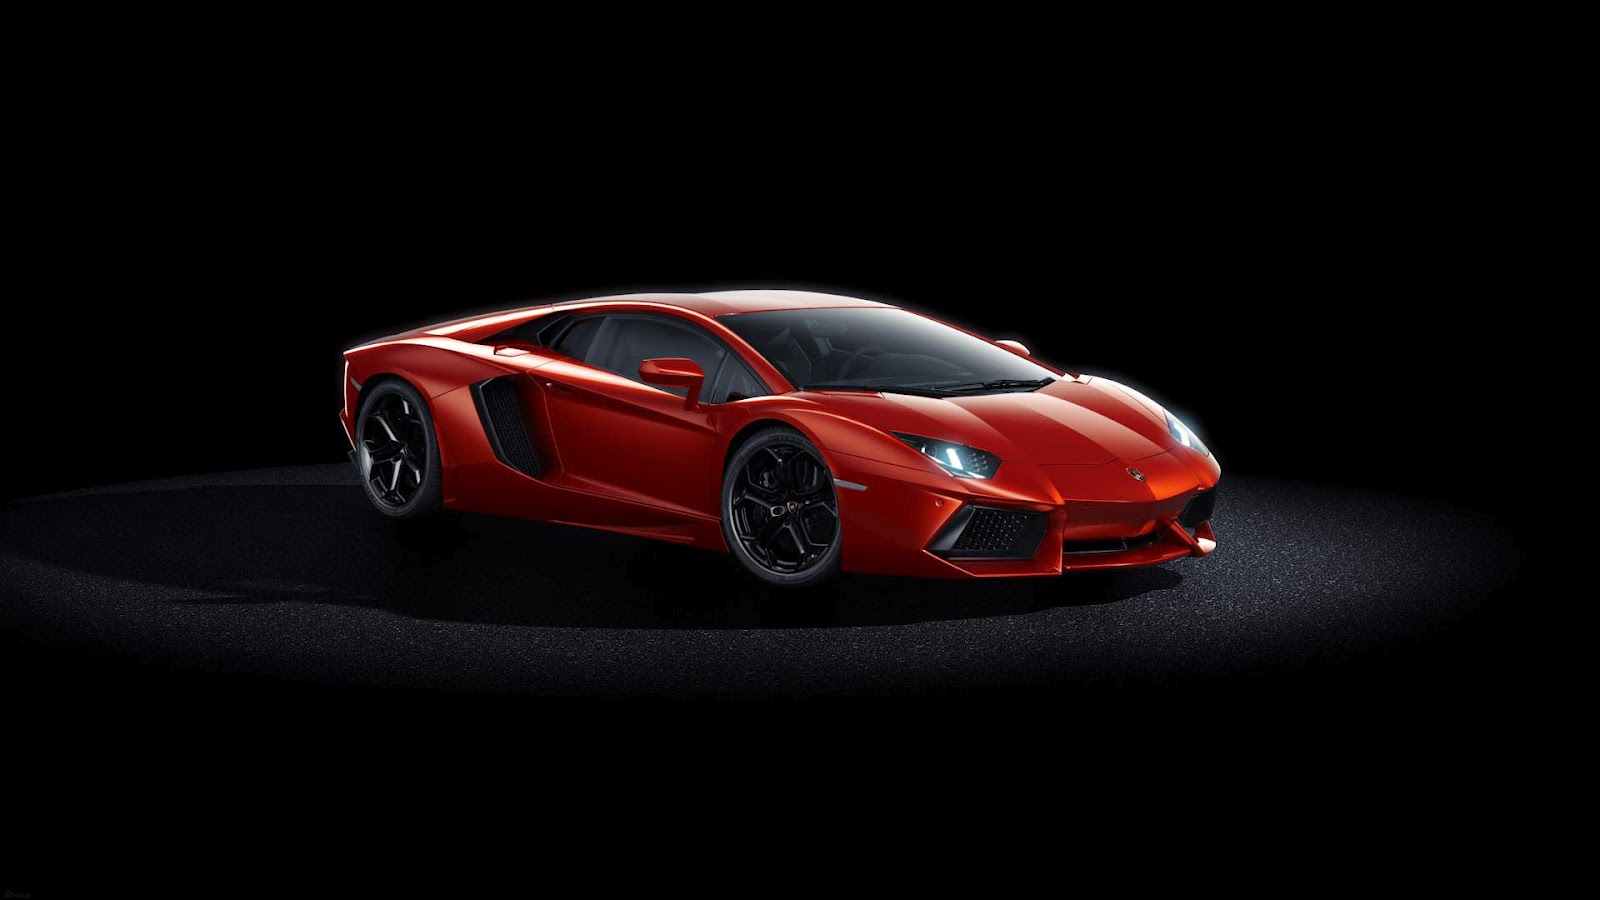 1600x900 Black And White Wallpapers: Red Ferrari Sports Car Wallpaper